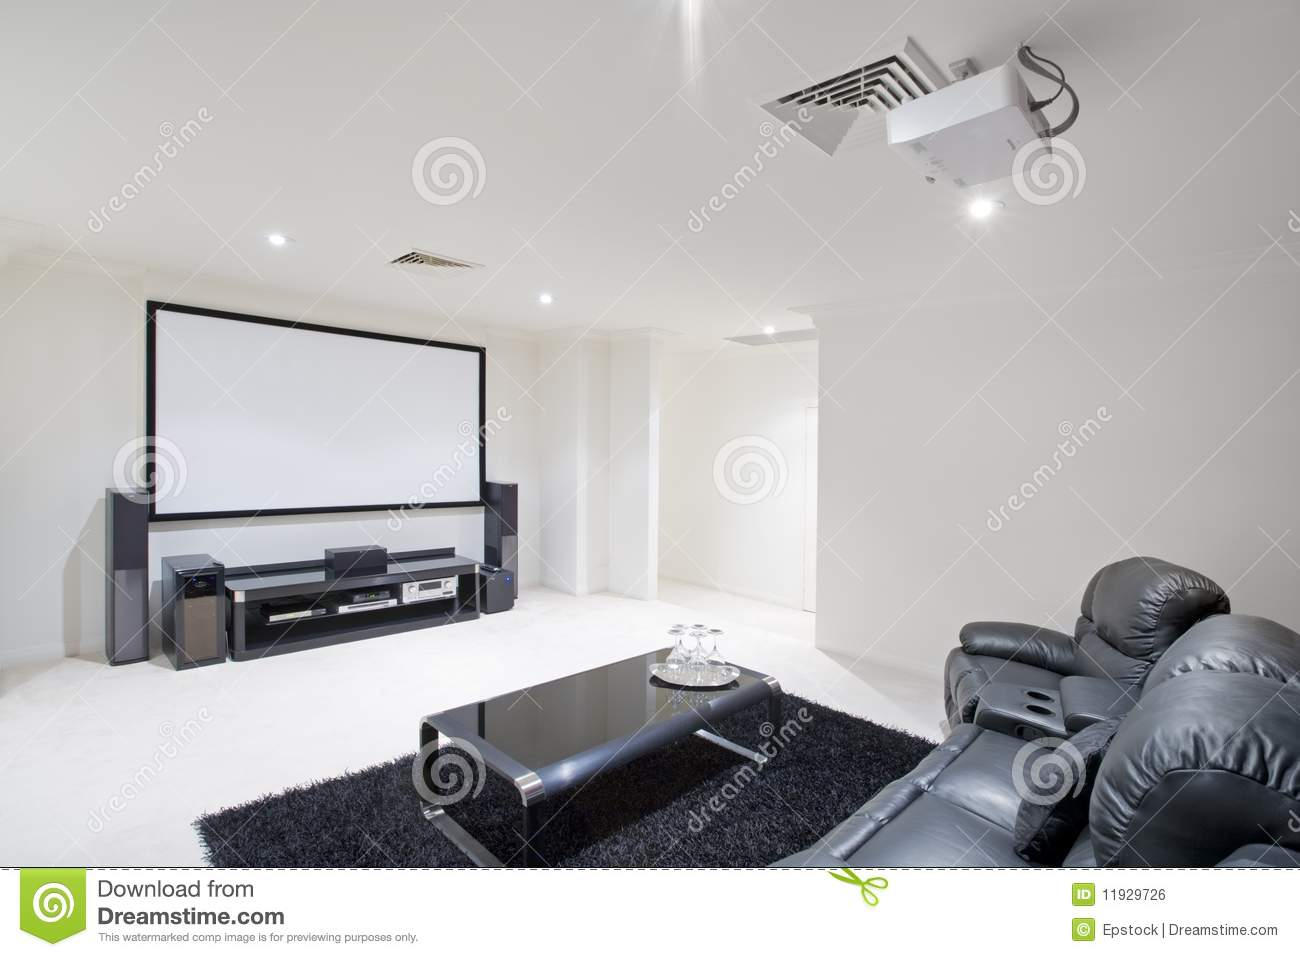 Home Theatre Room stock photo. Image of indoors, minimal - 11929726